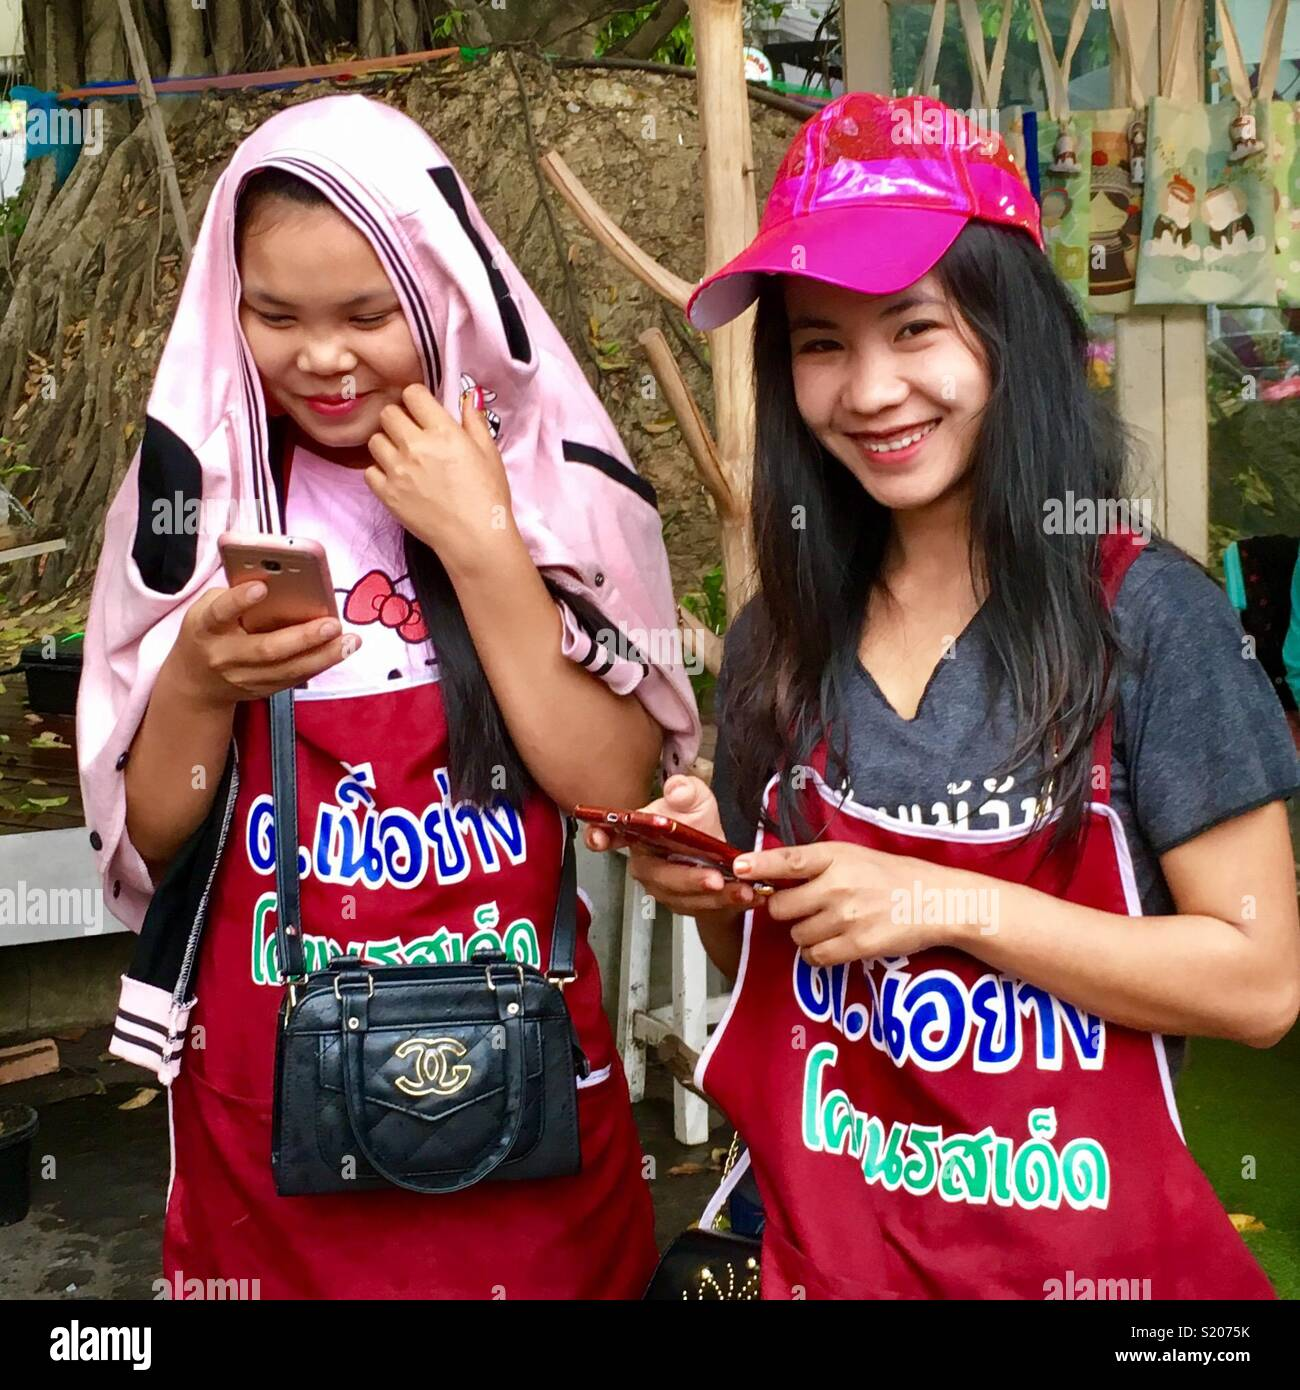 Young Thai salesladies on their mobile phone - Stock Image